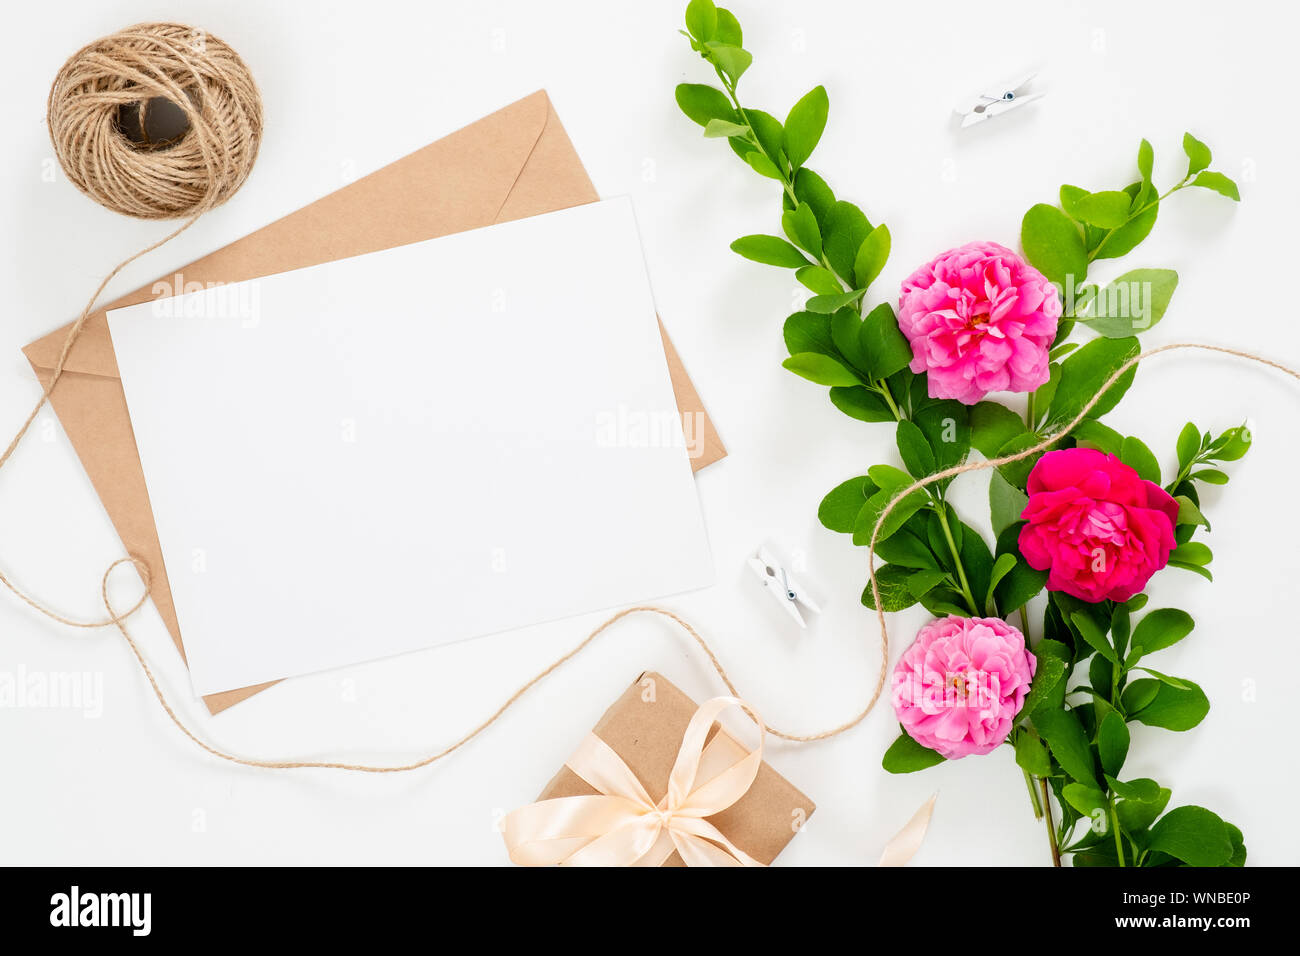 https www alamy com wedding invitation card blank paper card craft envelope ribbon and bouquet of pink rose flowers on white background minimal flat lay style composi image271315766 html